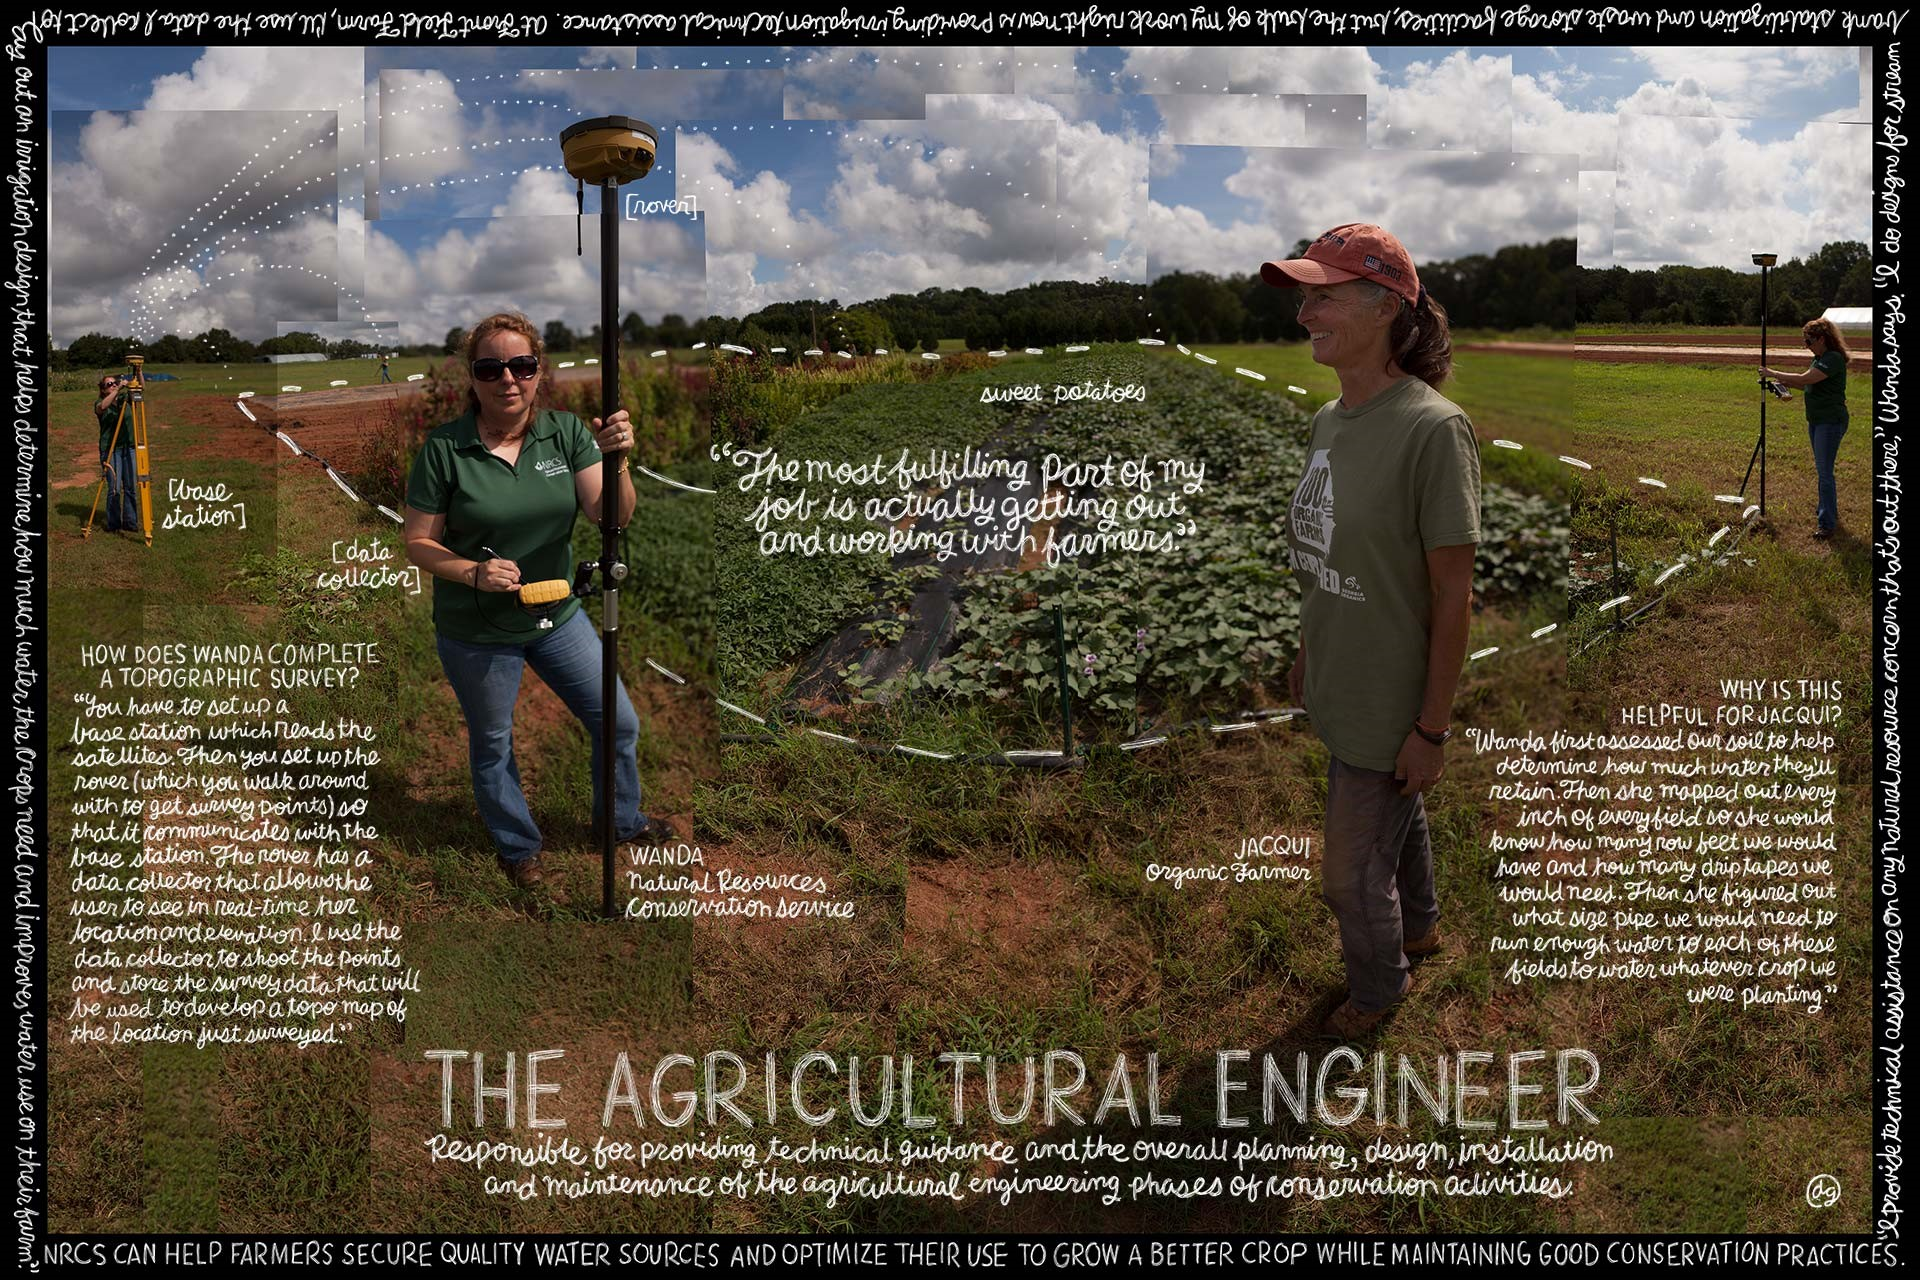 The Agriculural Engineer